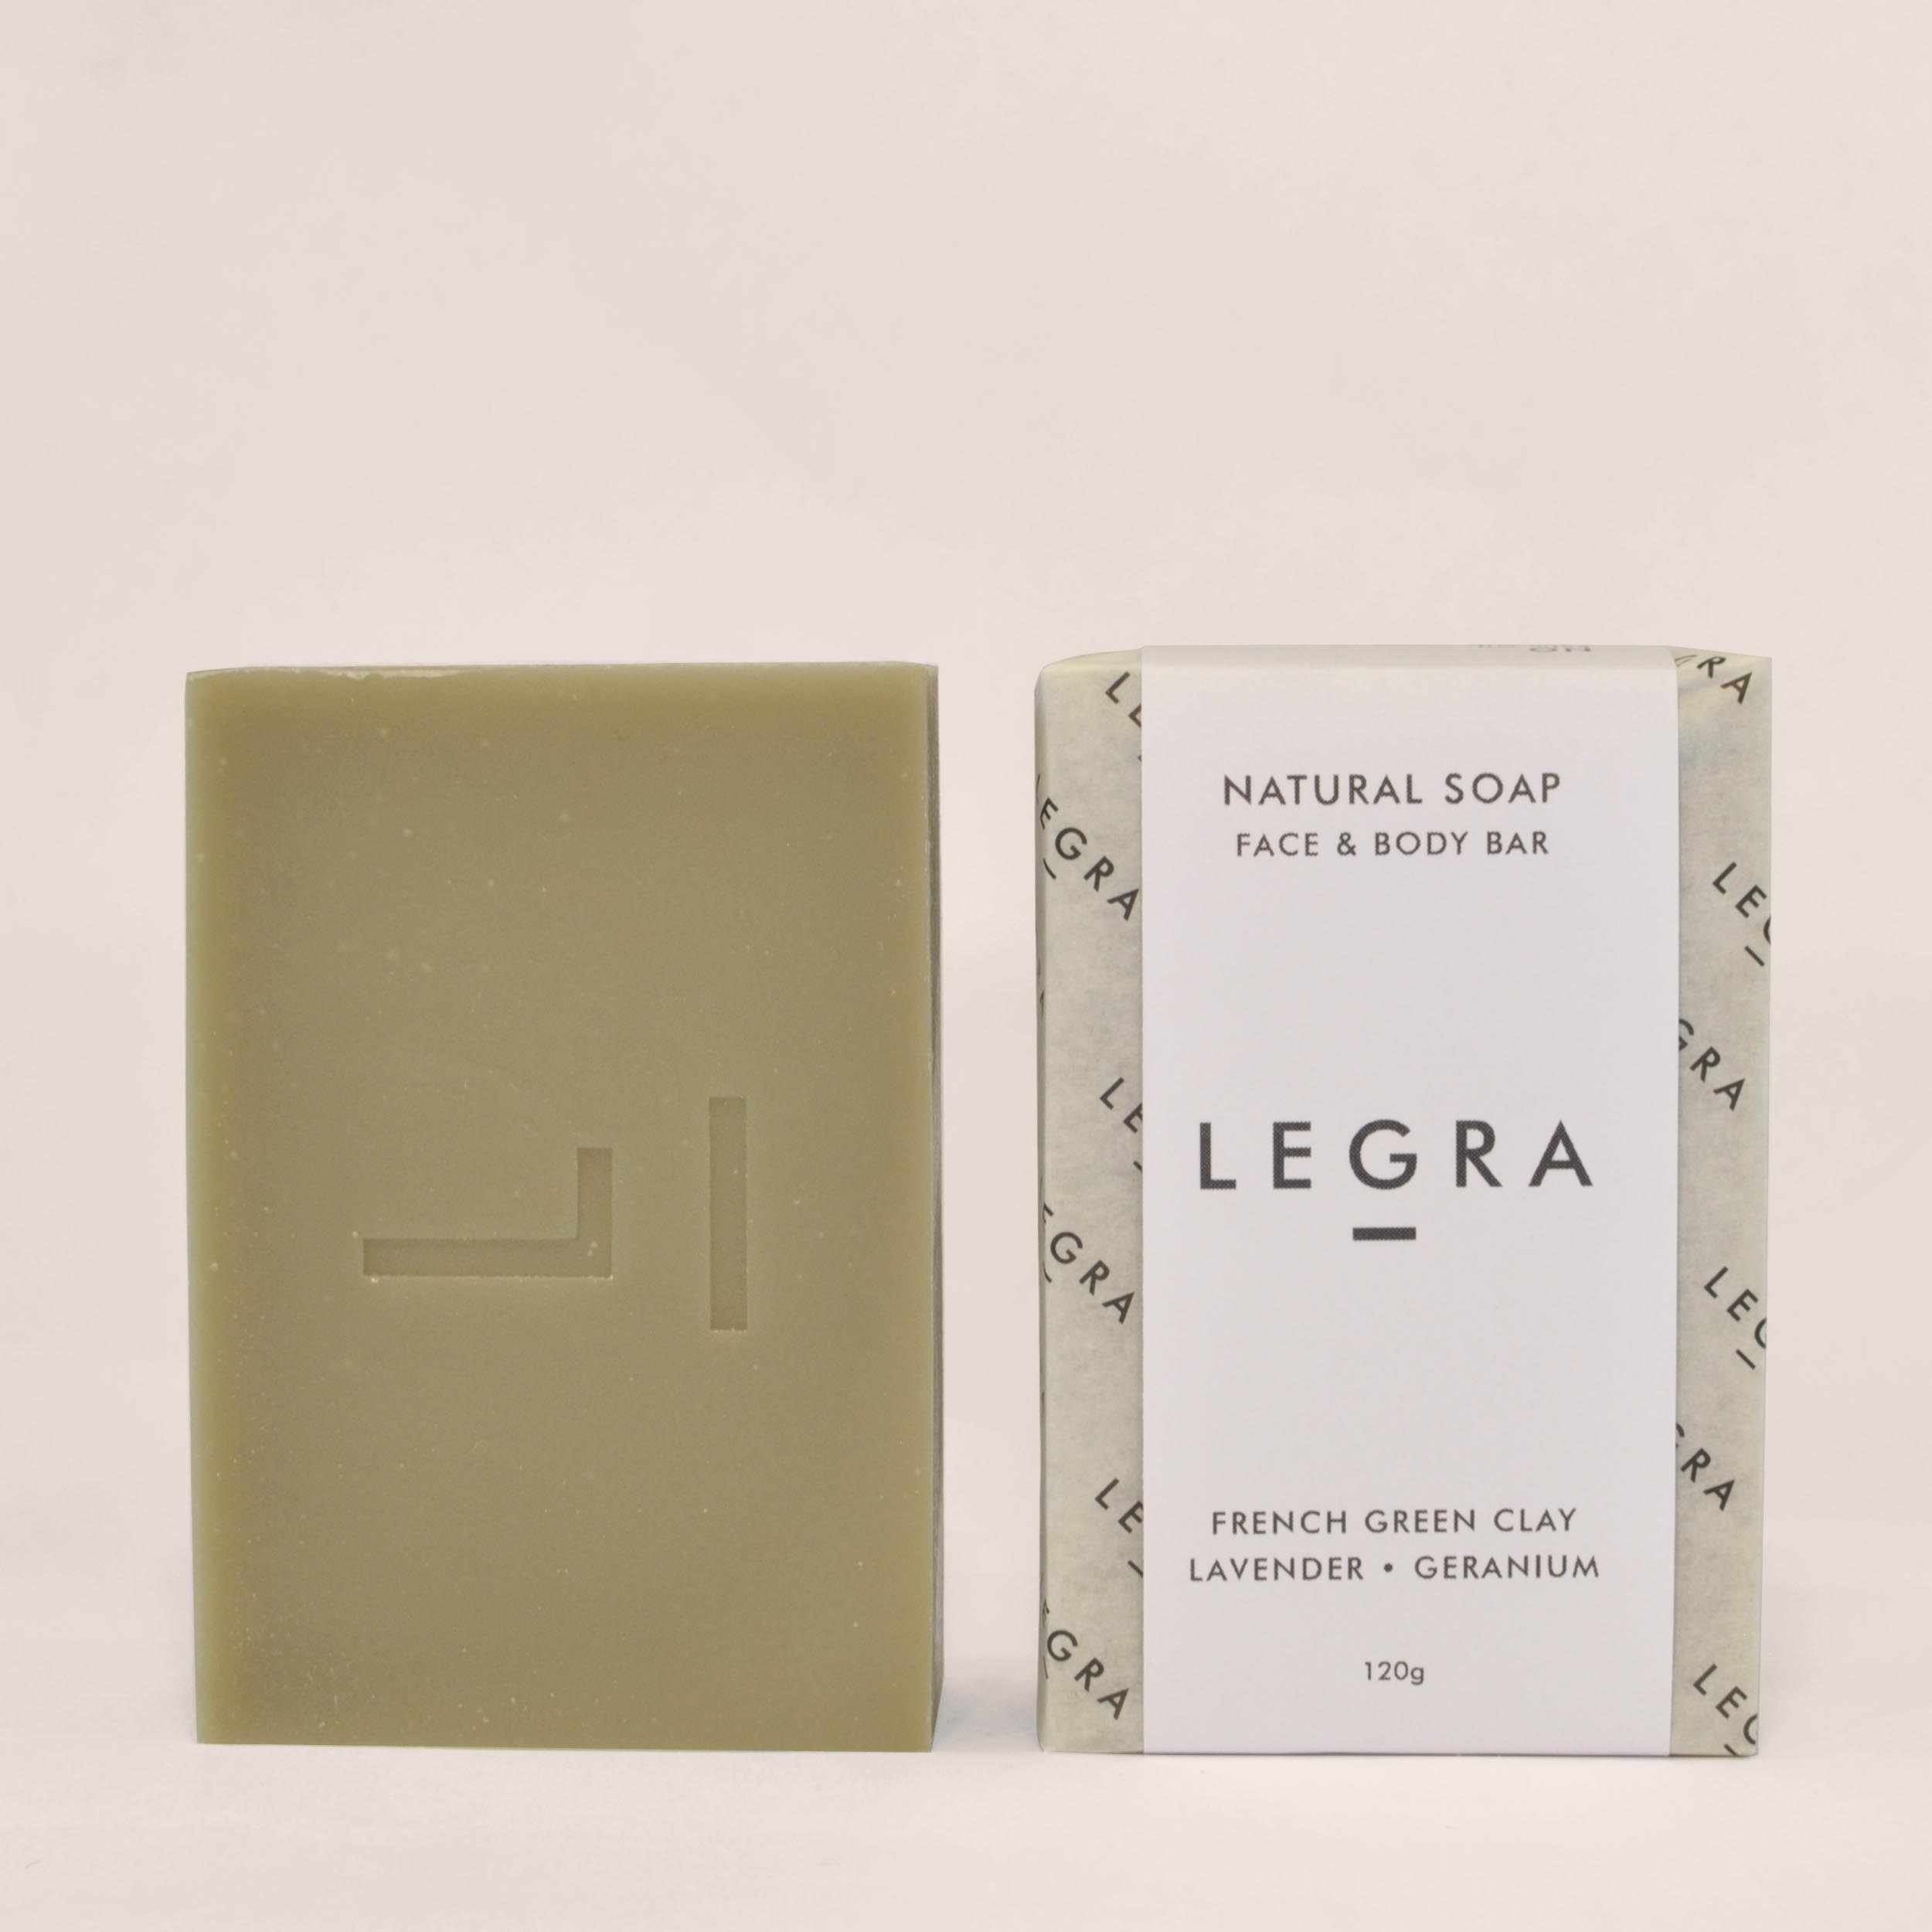 French Green Clay Soap with Lavender, Geranium & Patchouli